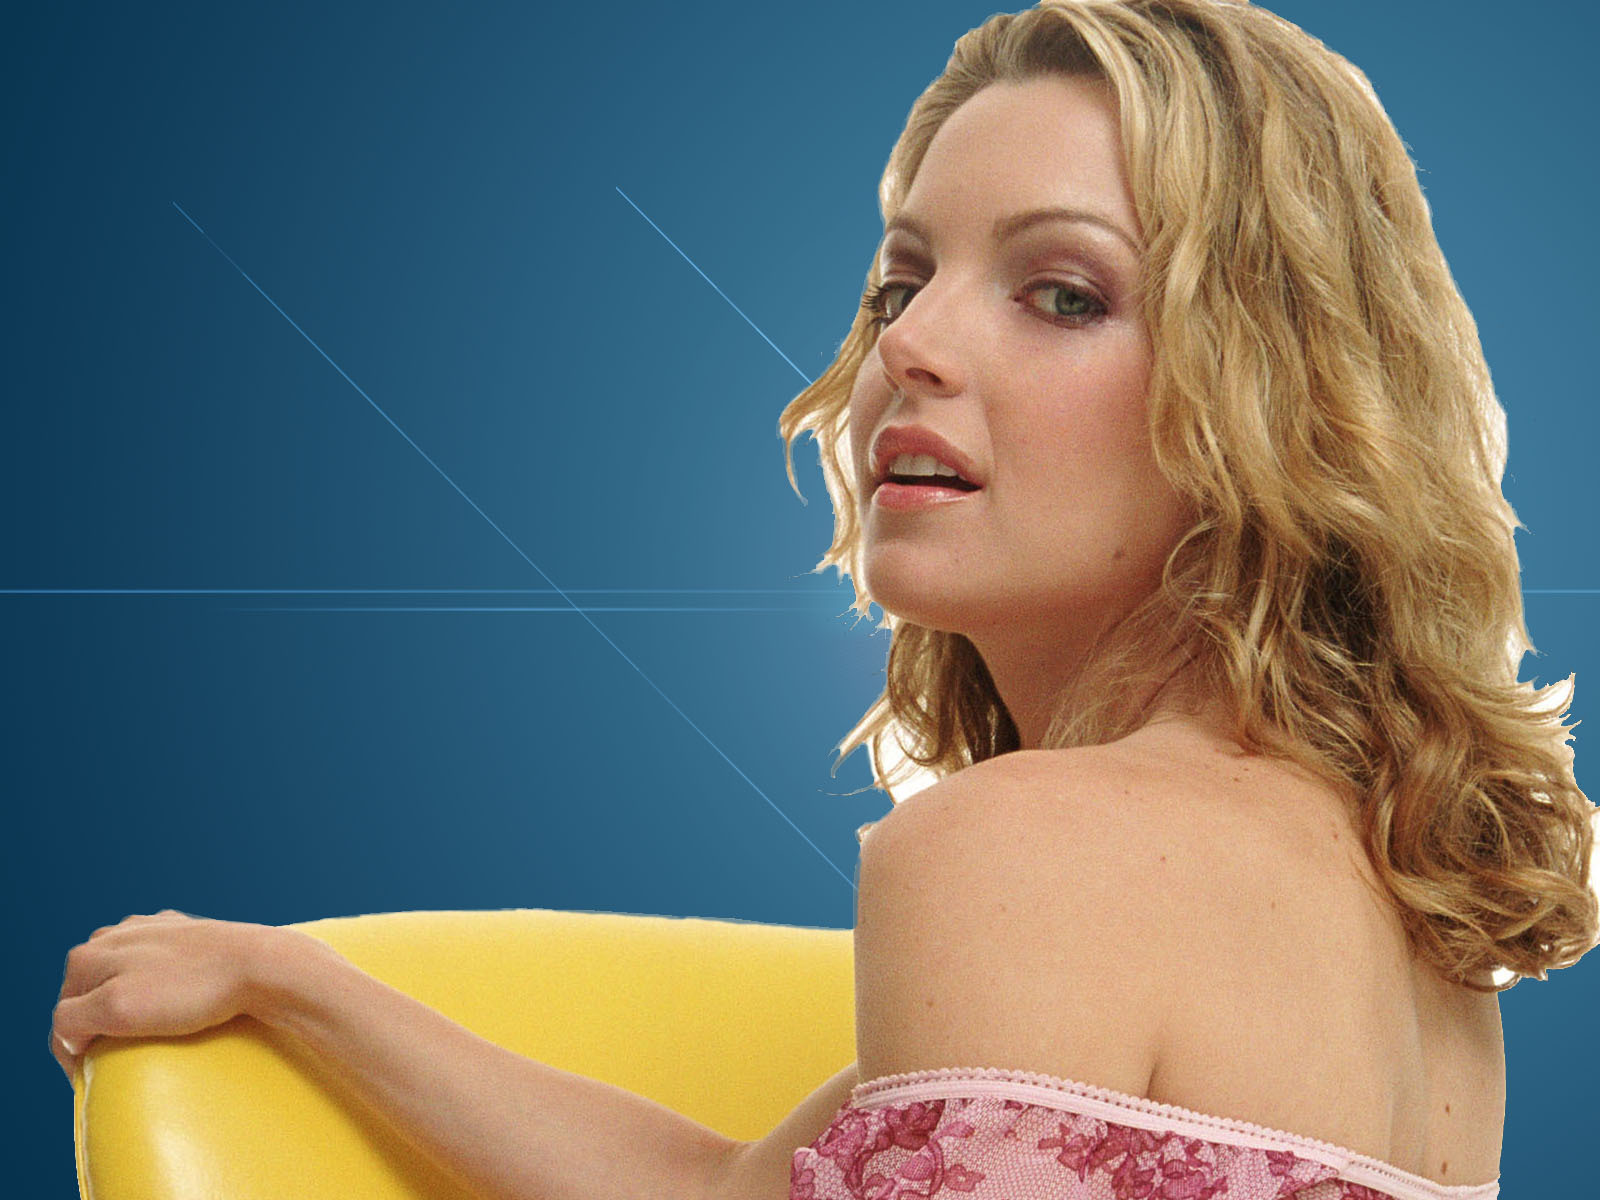 Clare Kramer Wallpaper